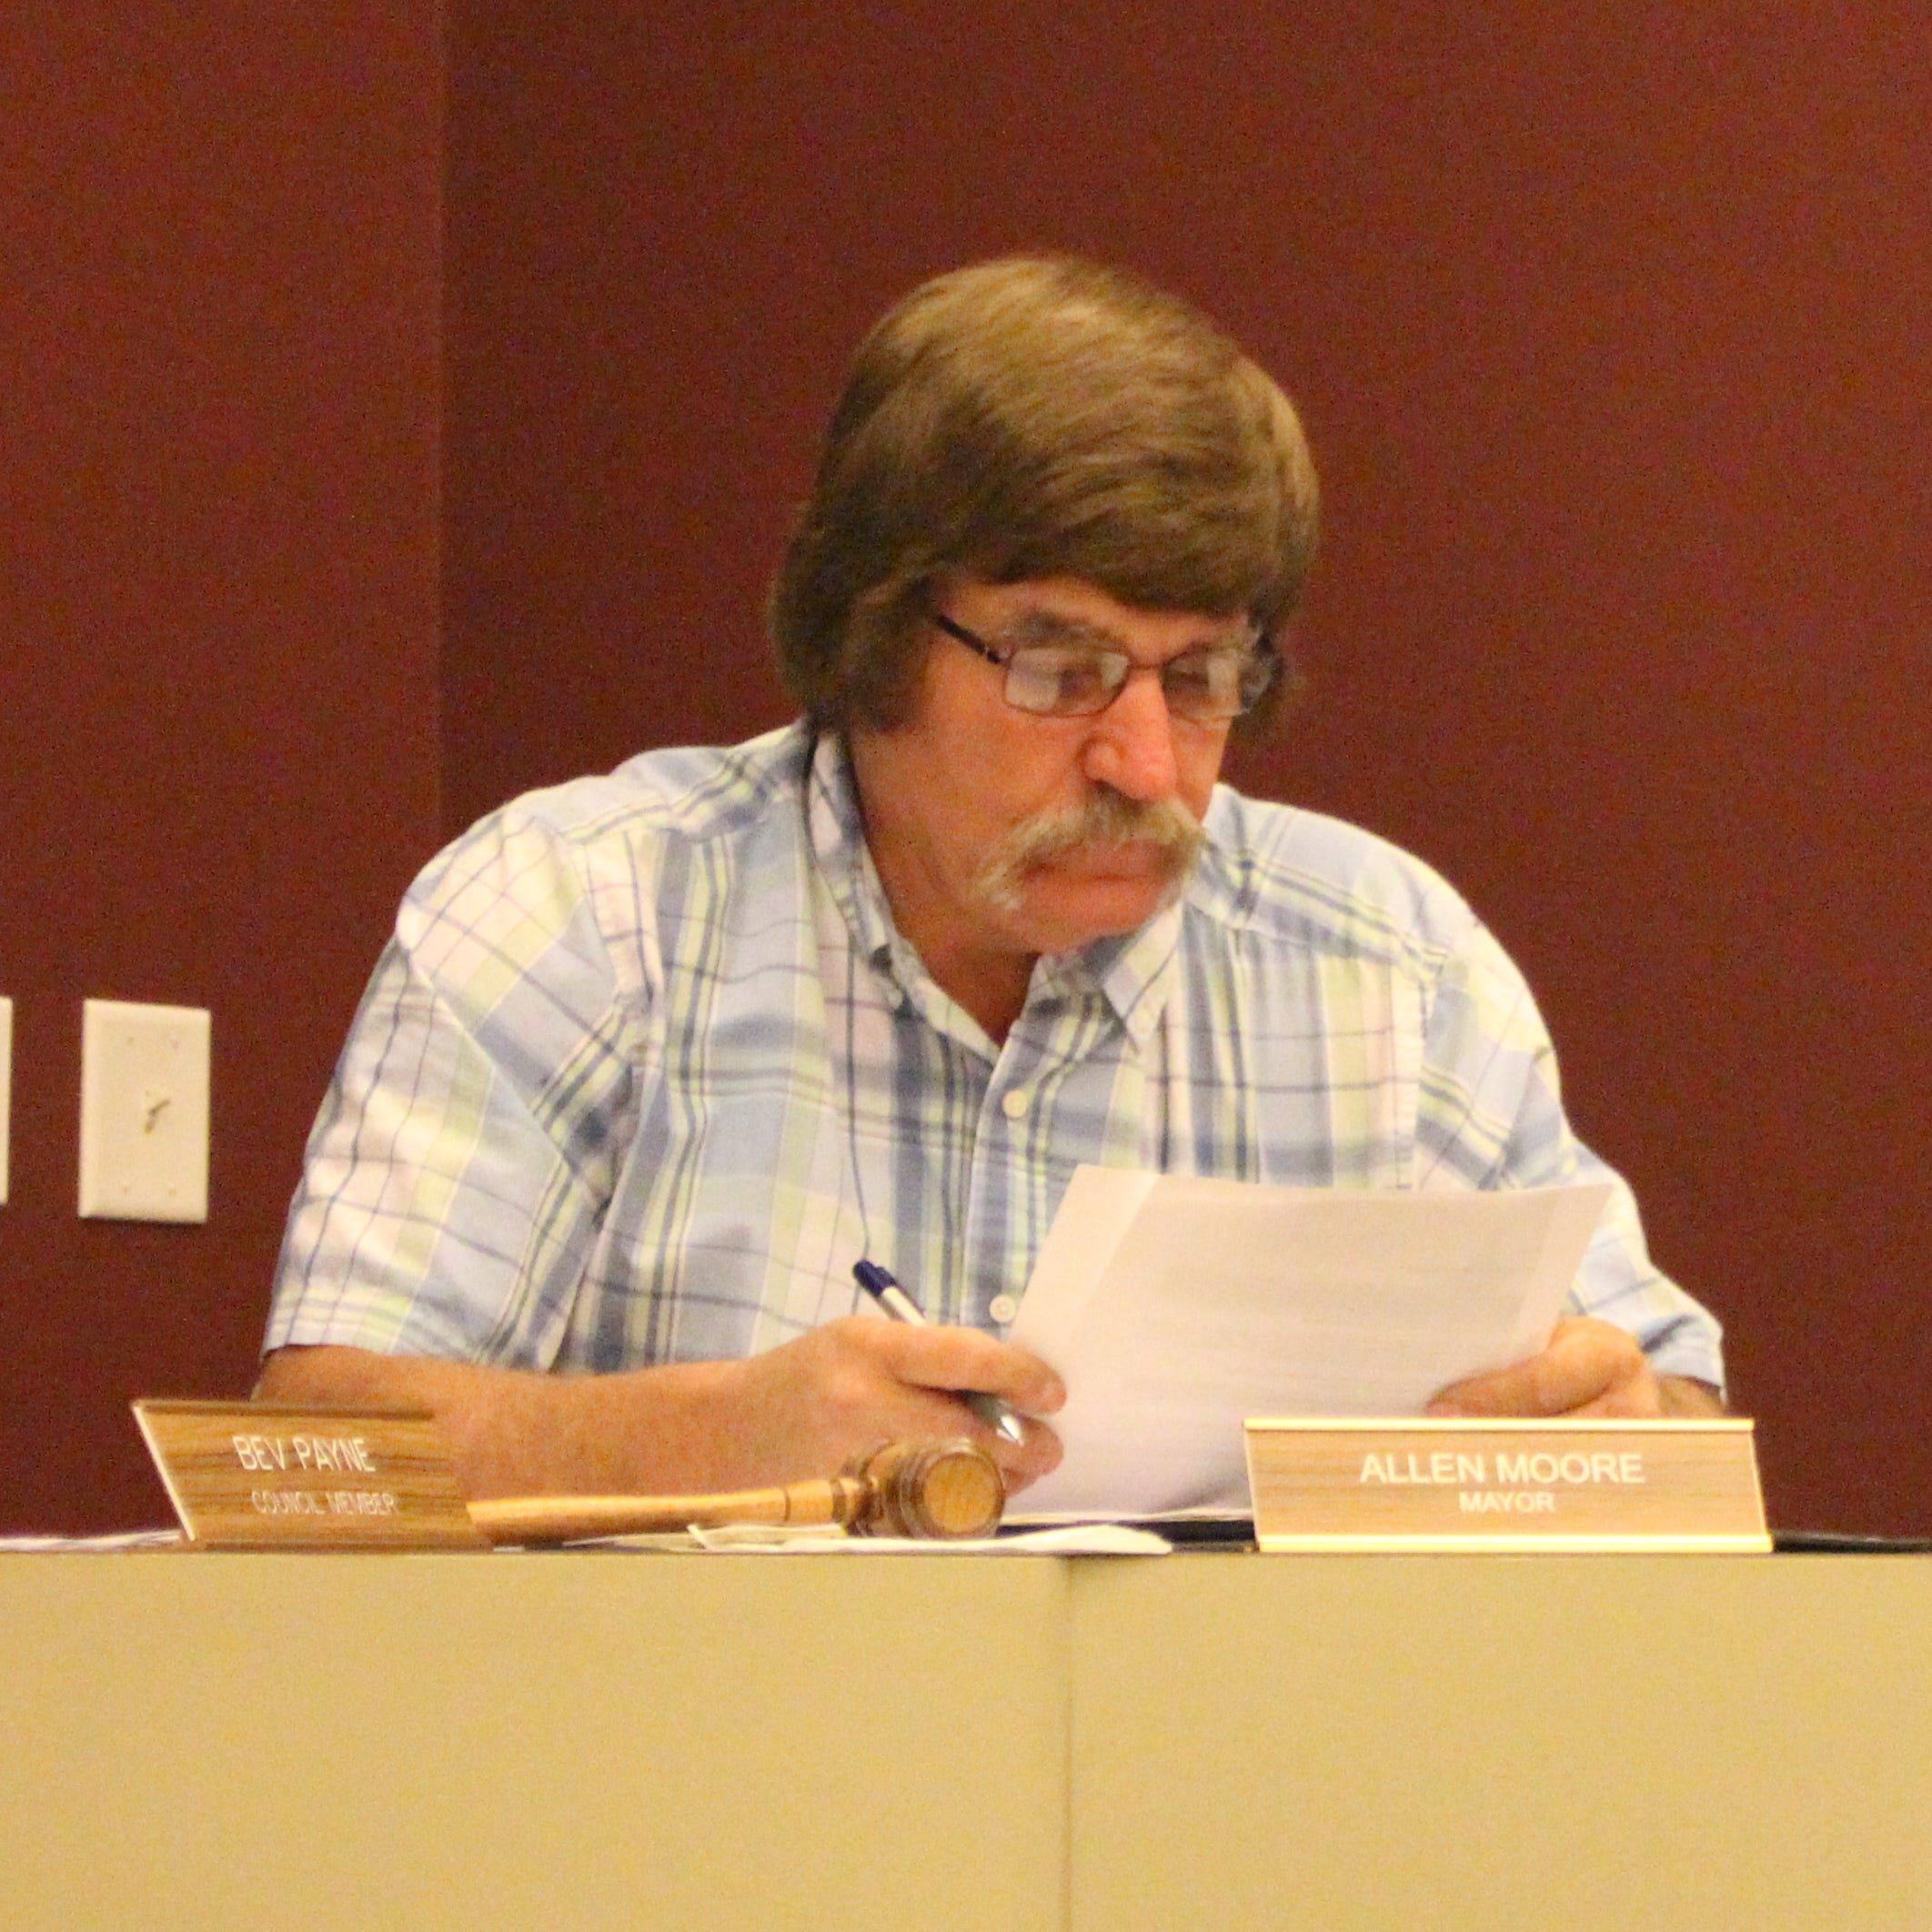 Crestline Mayor Allen Moore said he plans to resign at end of week over racial slur video